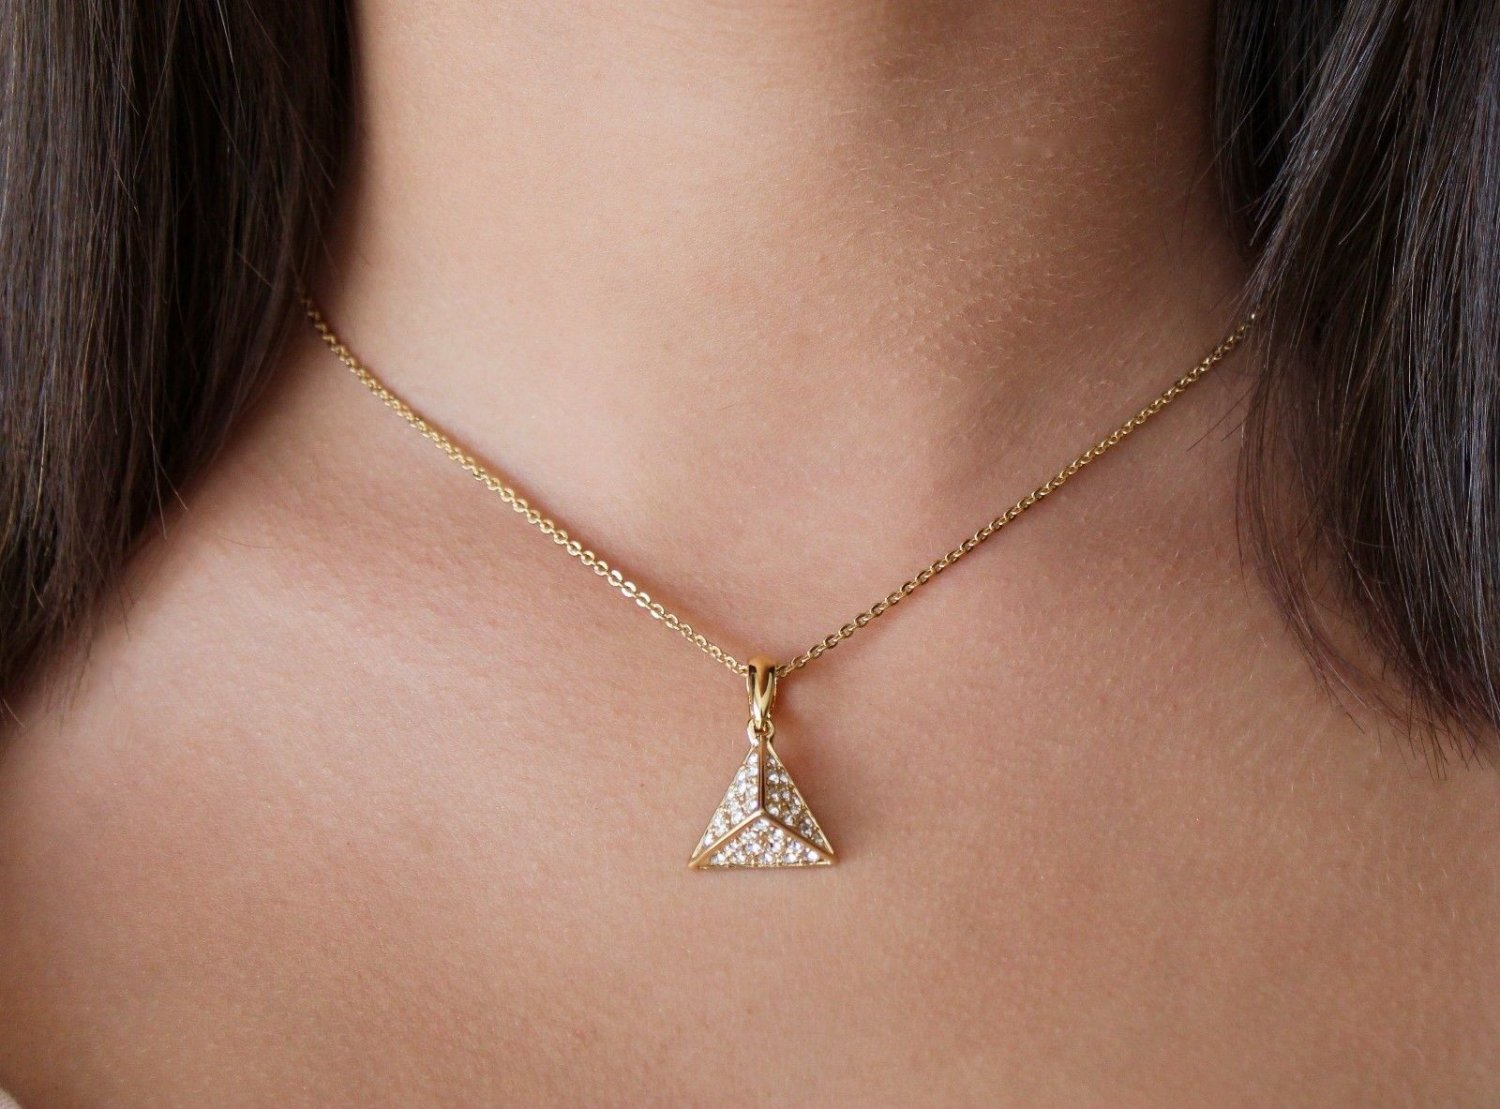 Equal Gold Pyramid Pendant Necklace Swarovski Clear Elements Oliver Weber